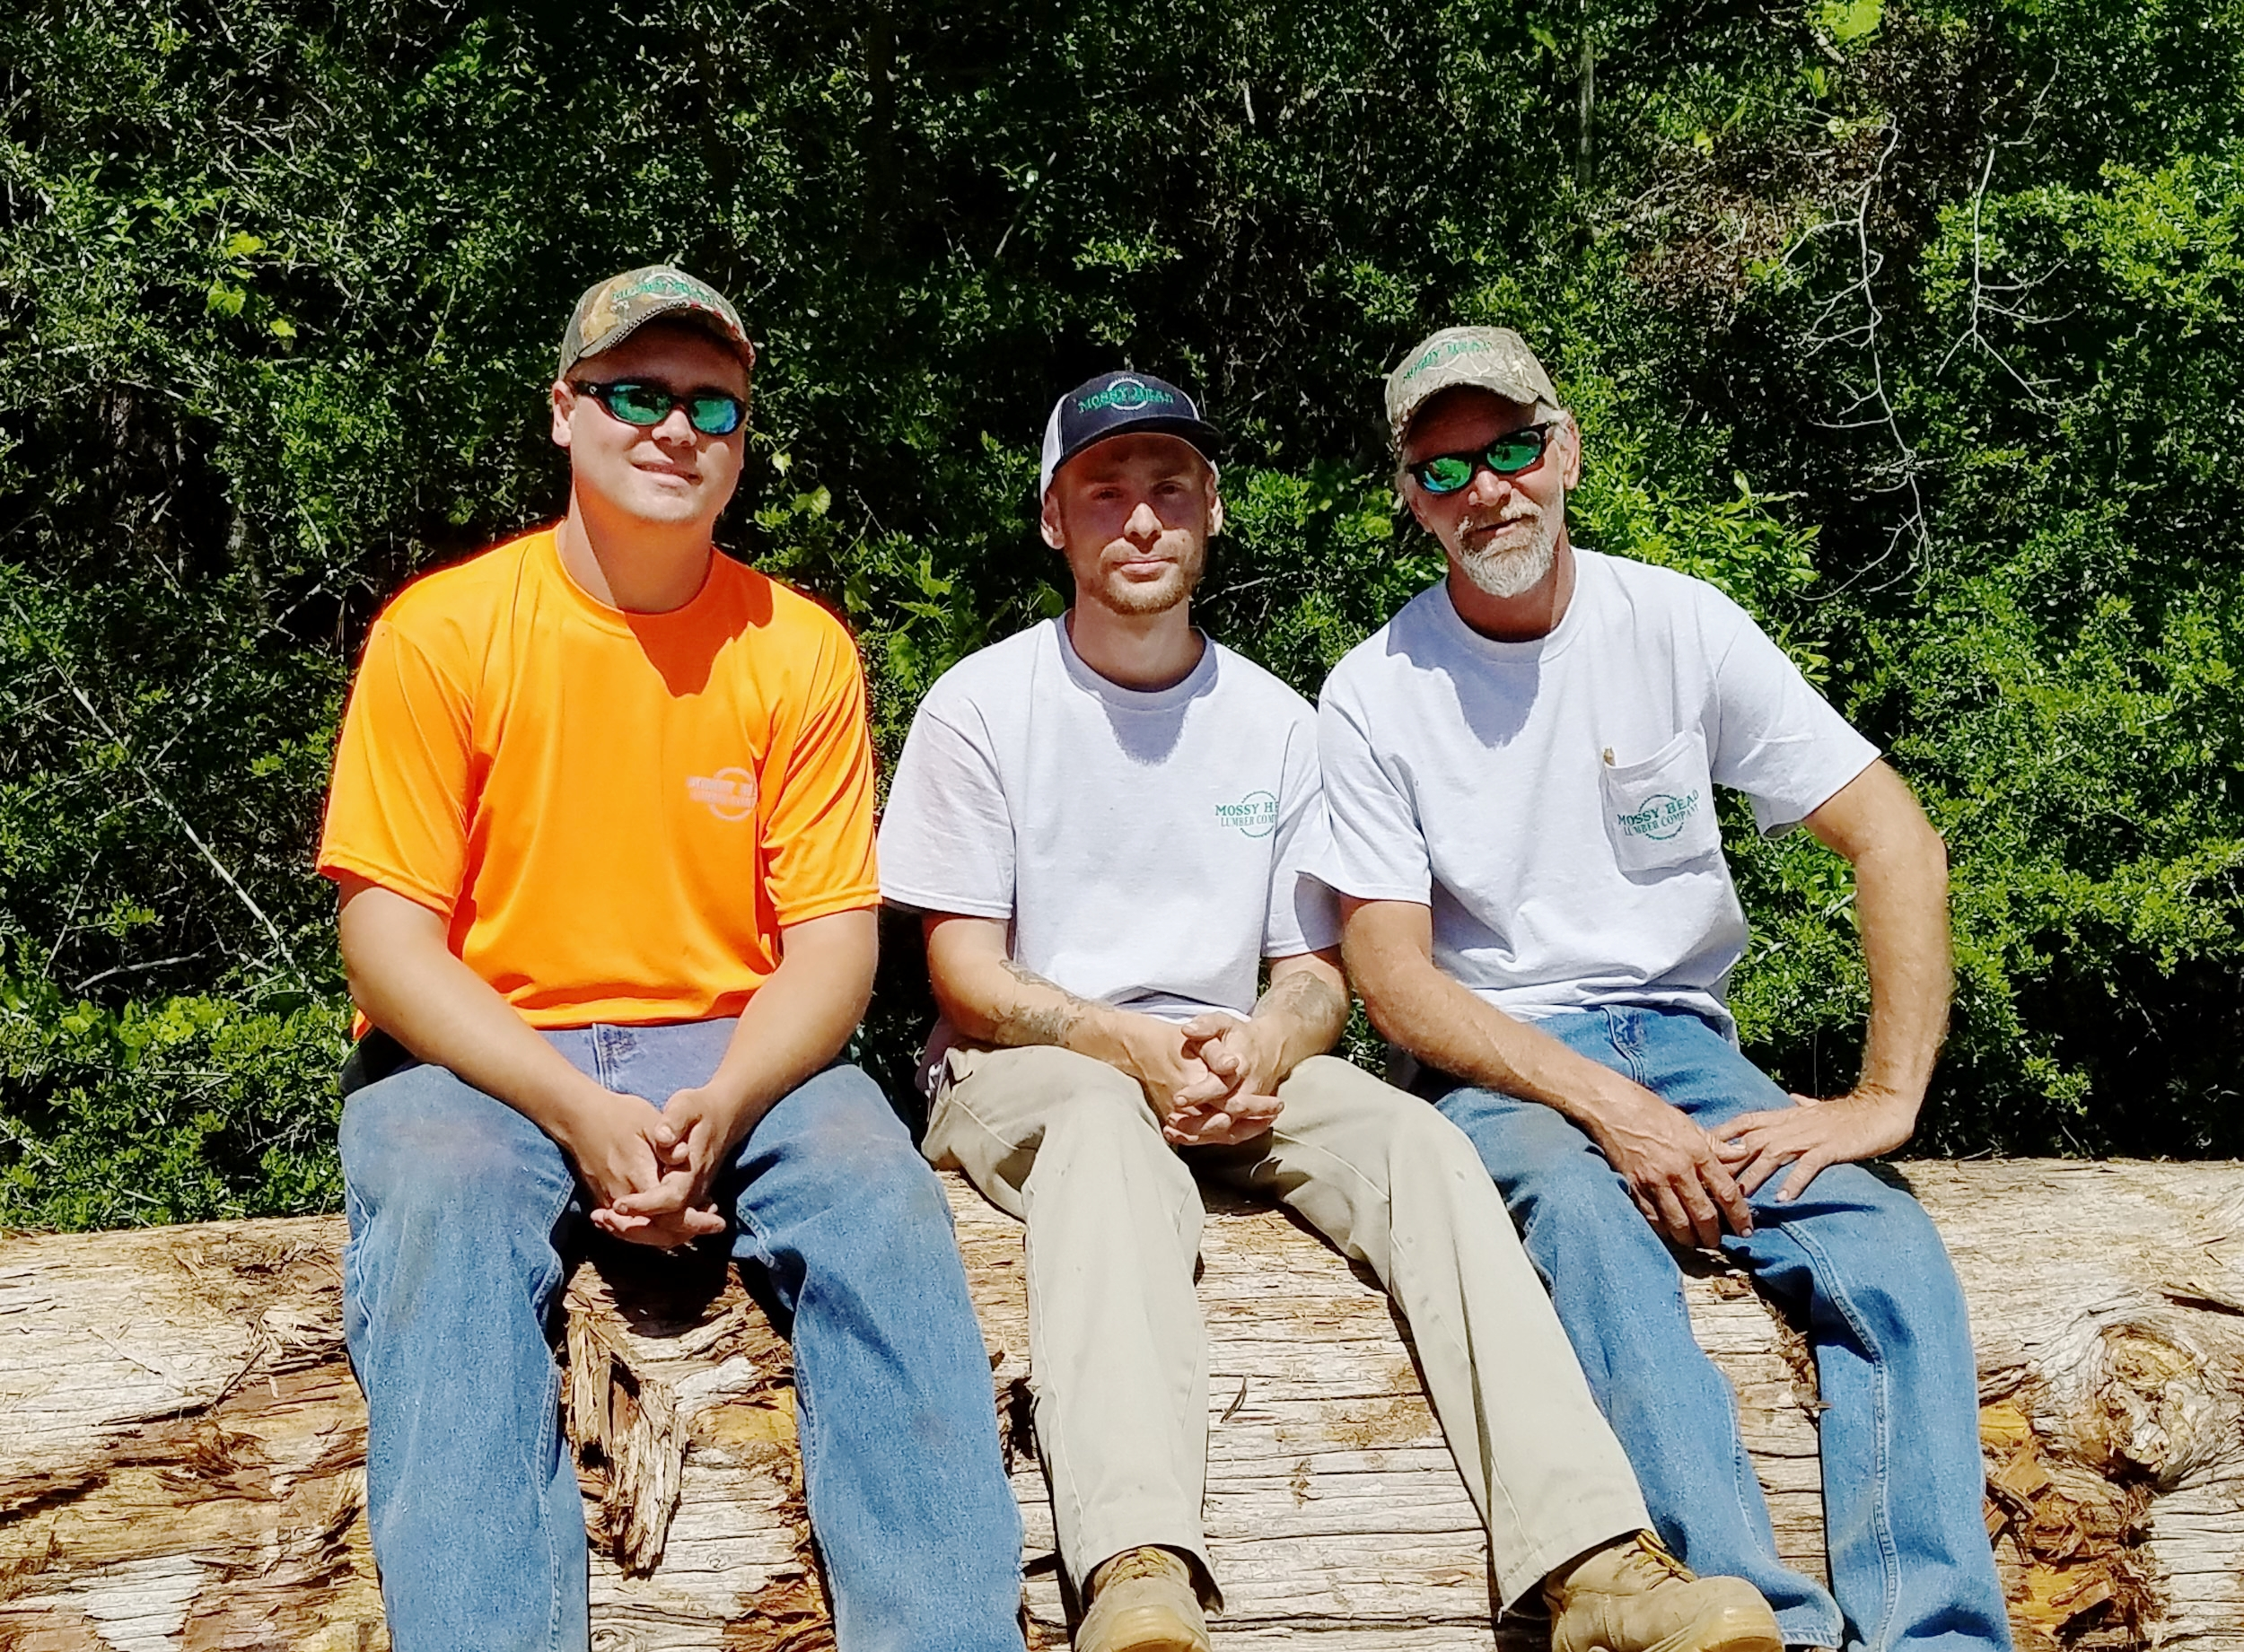 Corey, Steve and Rich Mitchell, Owners/Founders of Mossy Head Lumber Company